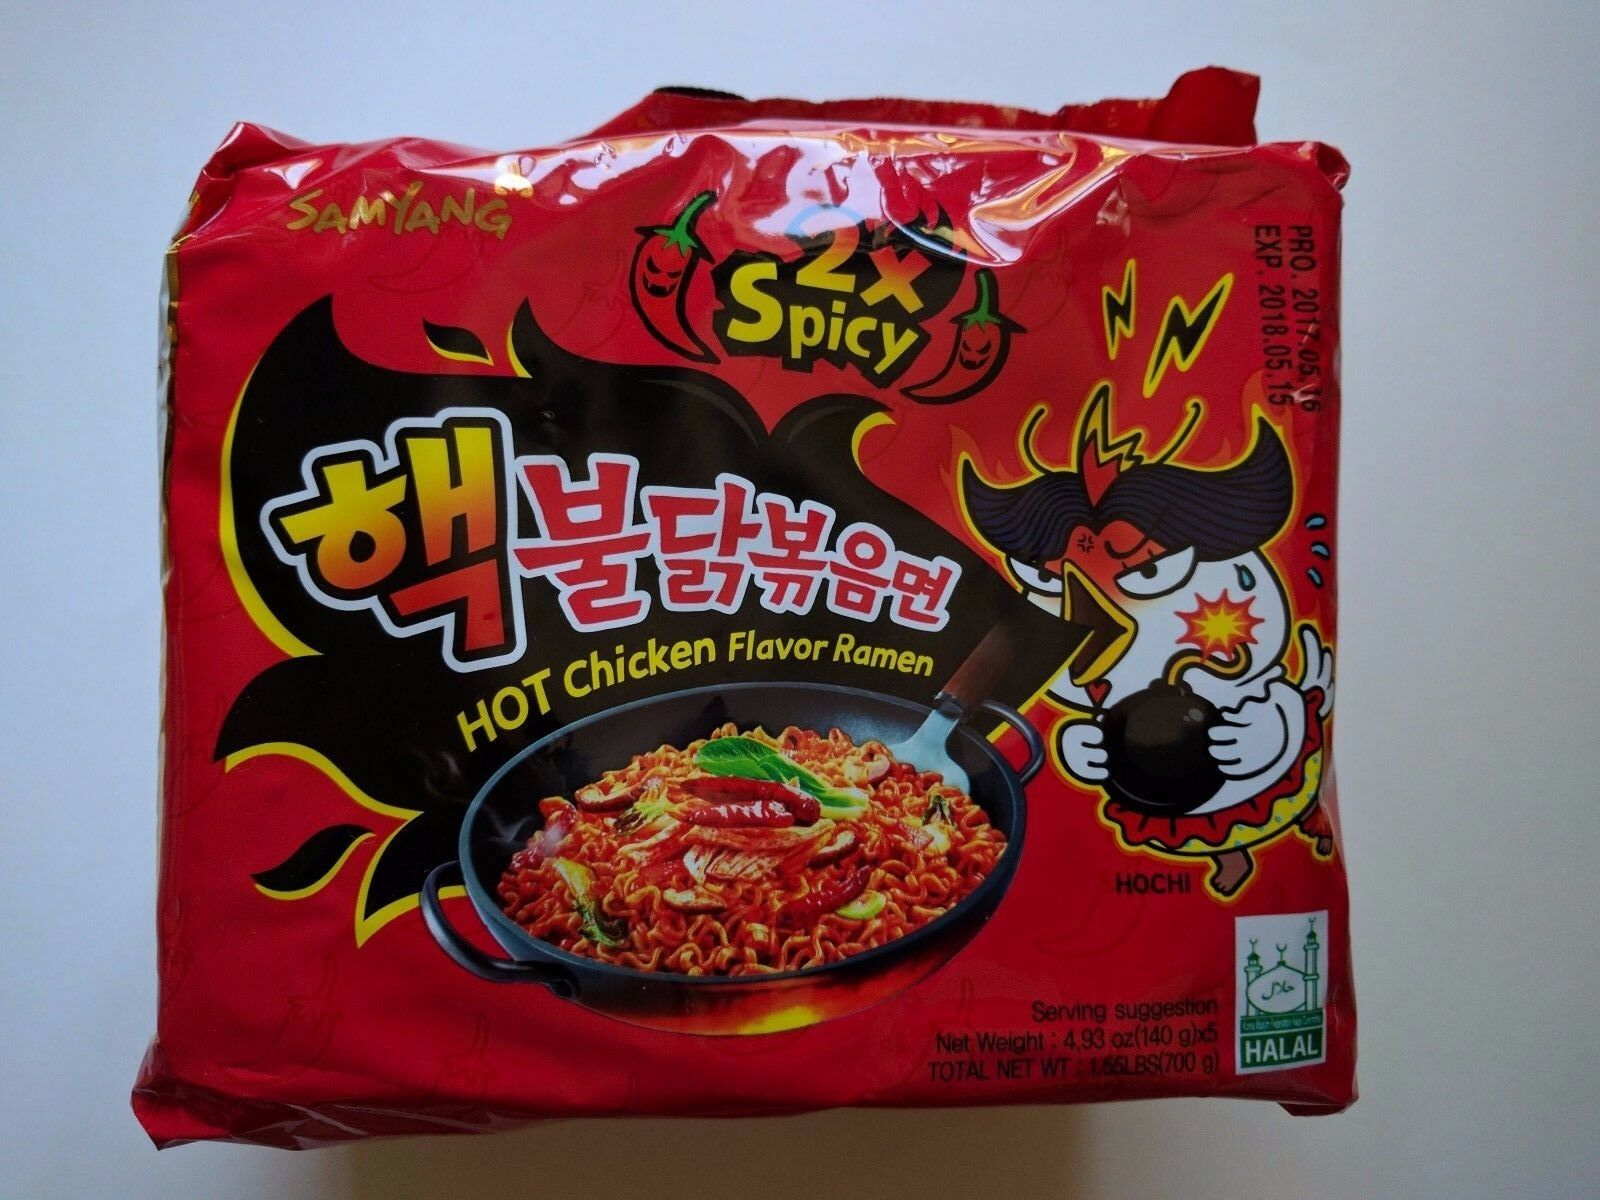 1 2 5 Packs Samyang 2x Spicy Hot Chicken Korean Ramen Fire Noodle Curry Logo Halal Challenge